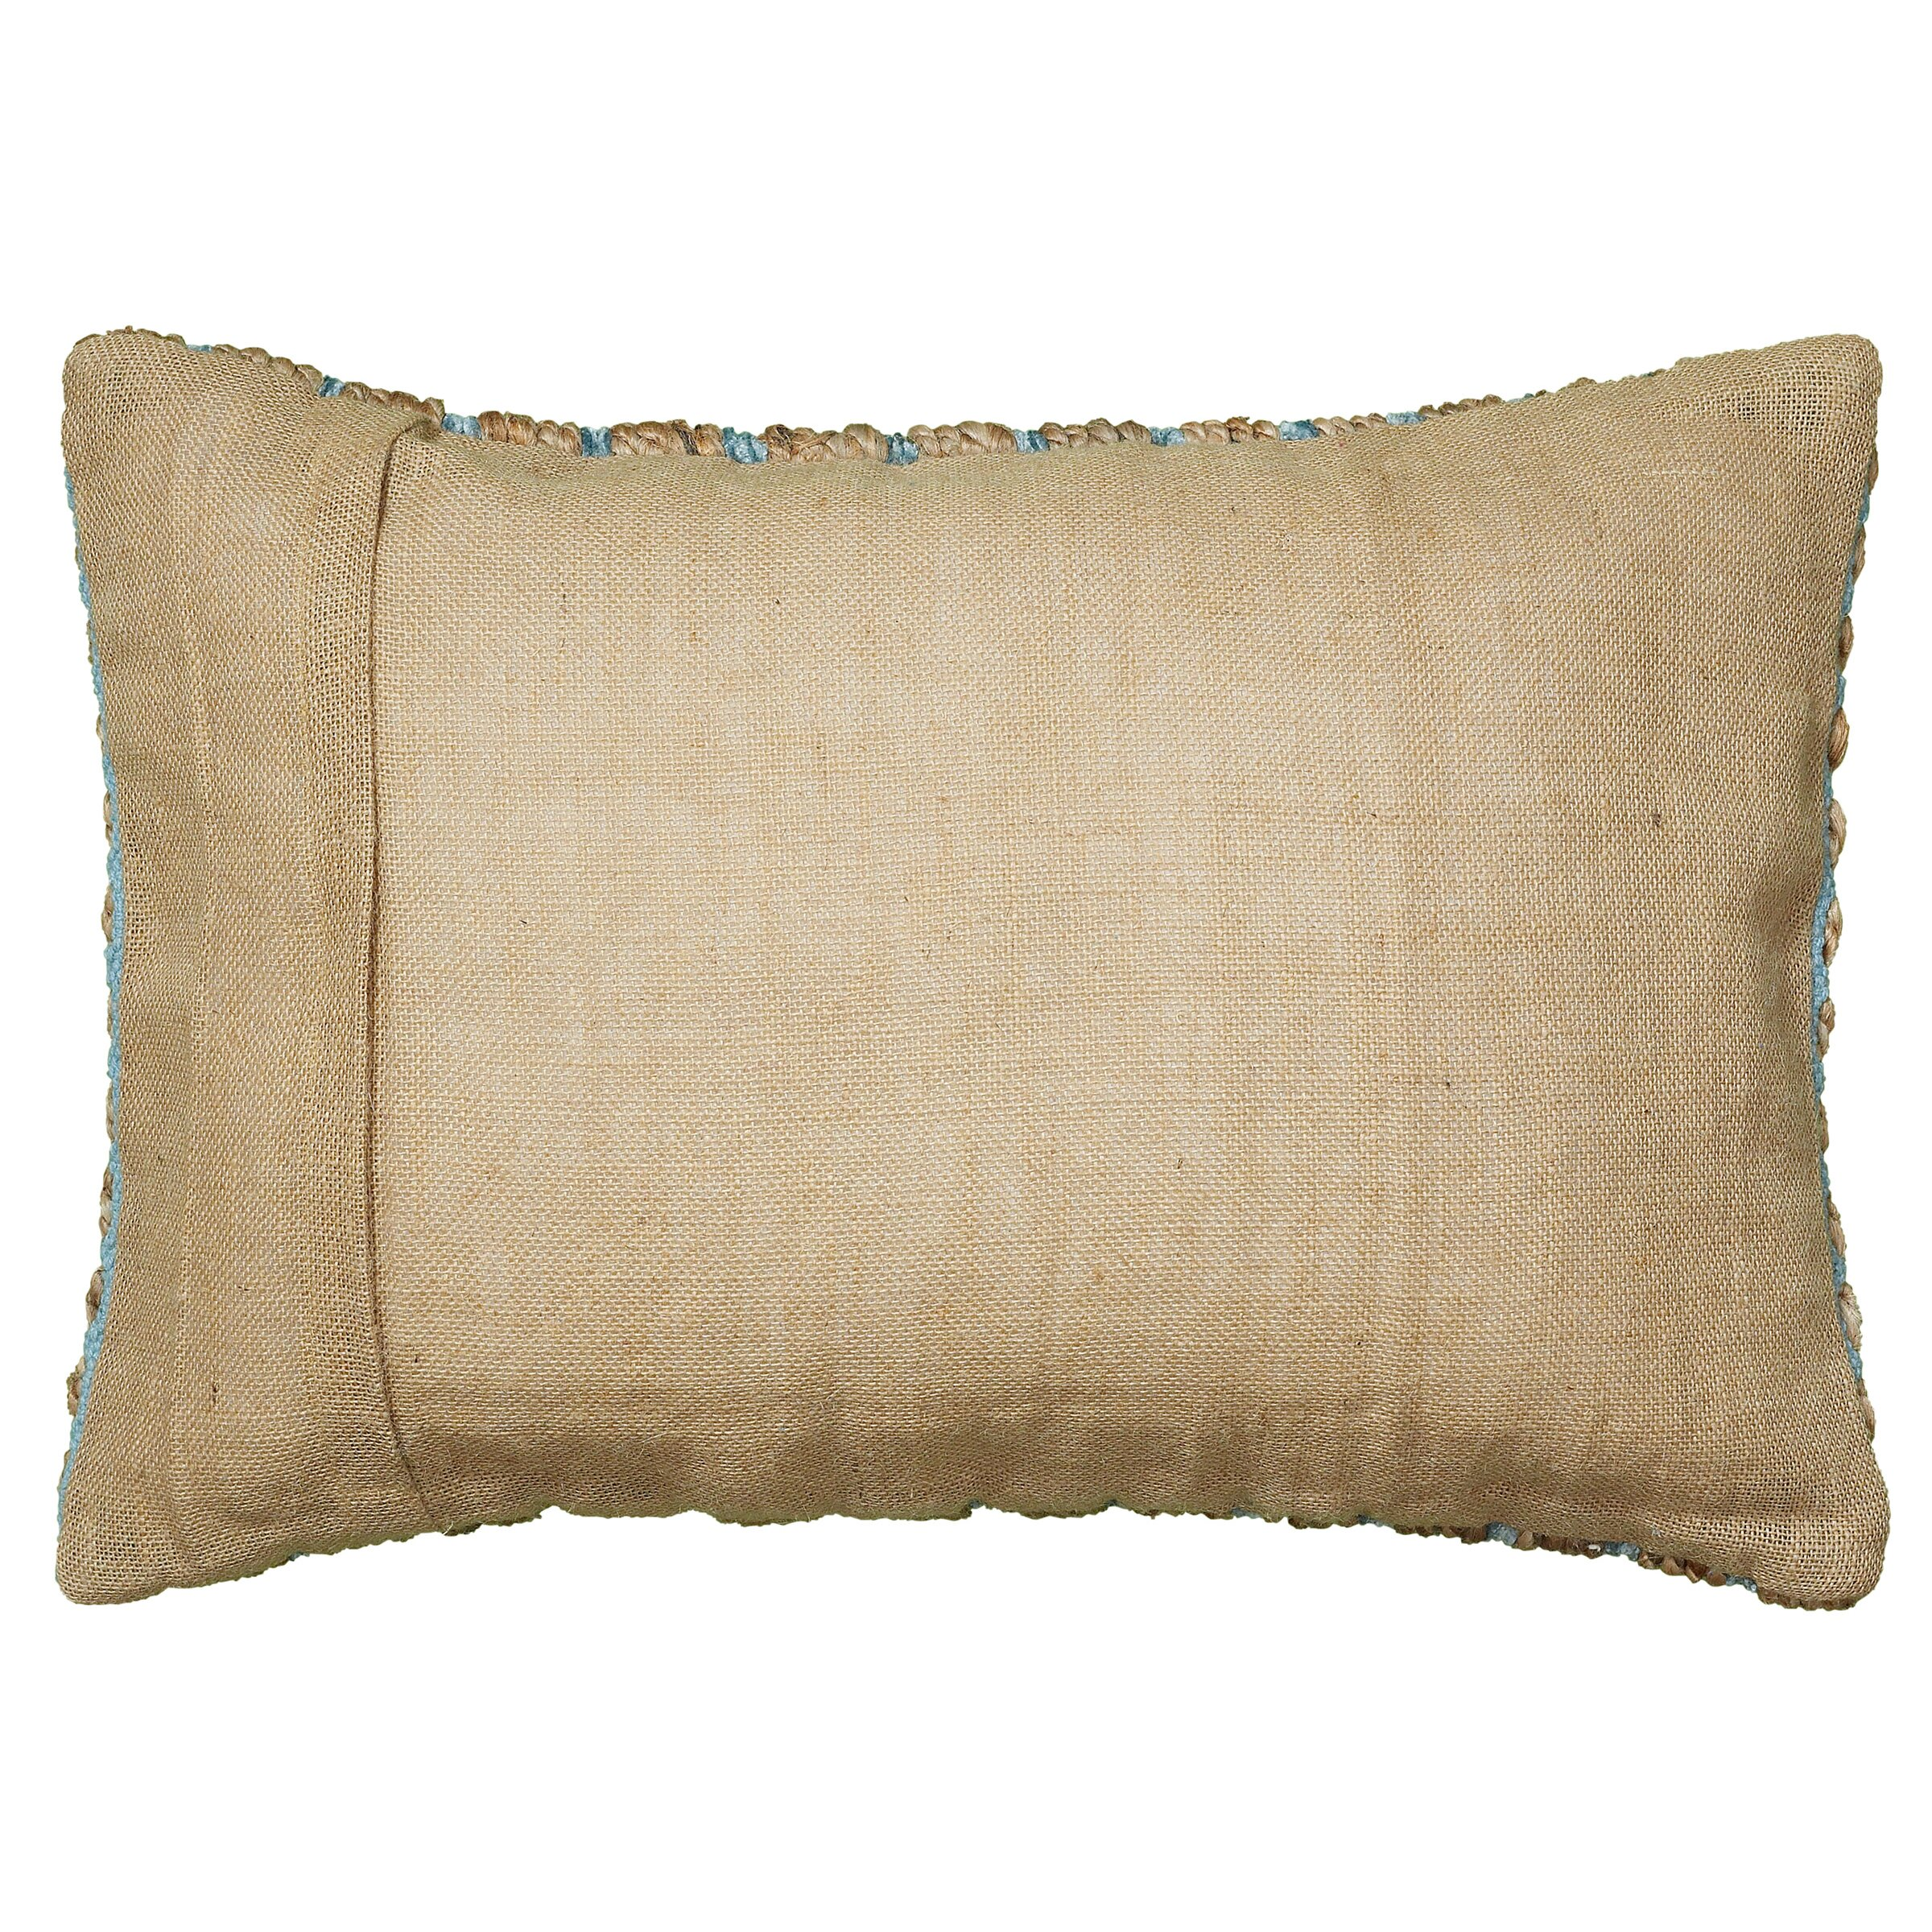 LR Resources Natural Fiber Accent Cotton Throw Pillow & Reviews Wayfair